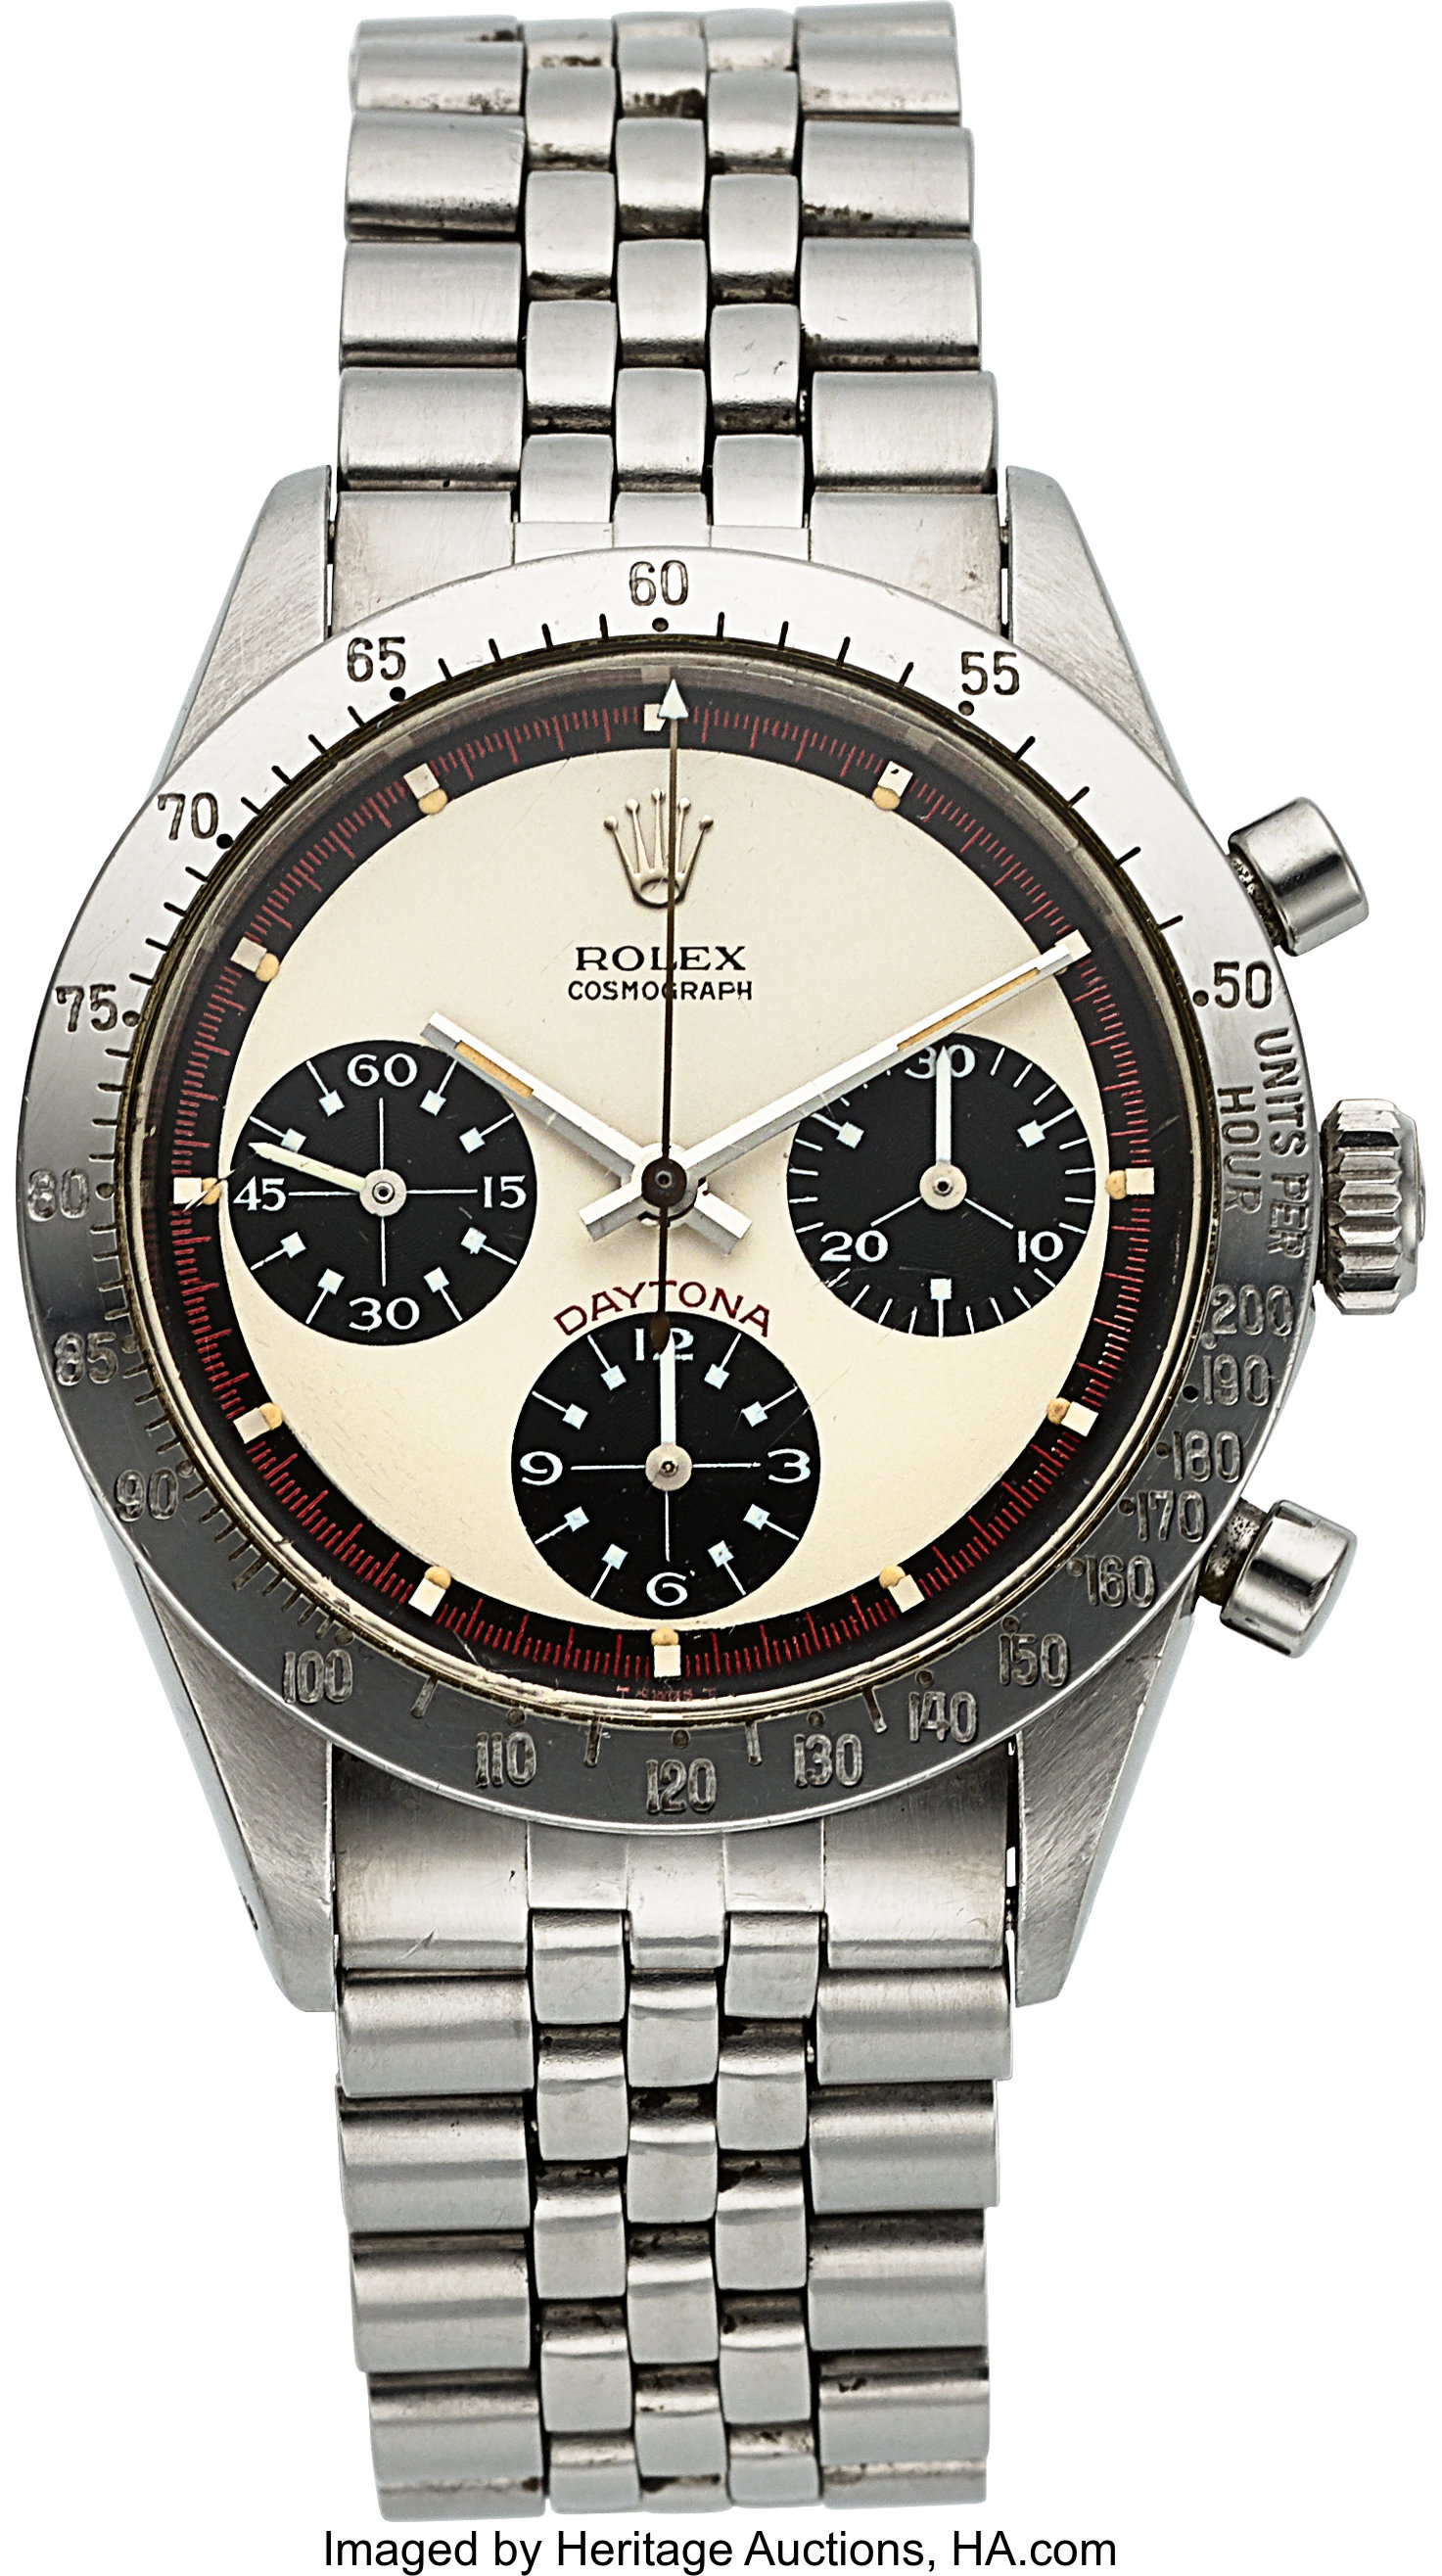 9ee8a53bd9b74 Search: rolex, 2018 May 1 Watches & Fine Timepieces Signature Auction - New  York 5363 [3201 790 231 4294949563]